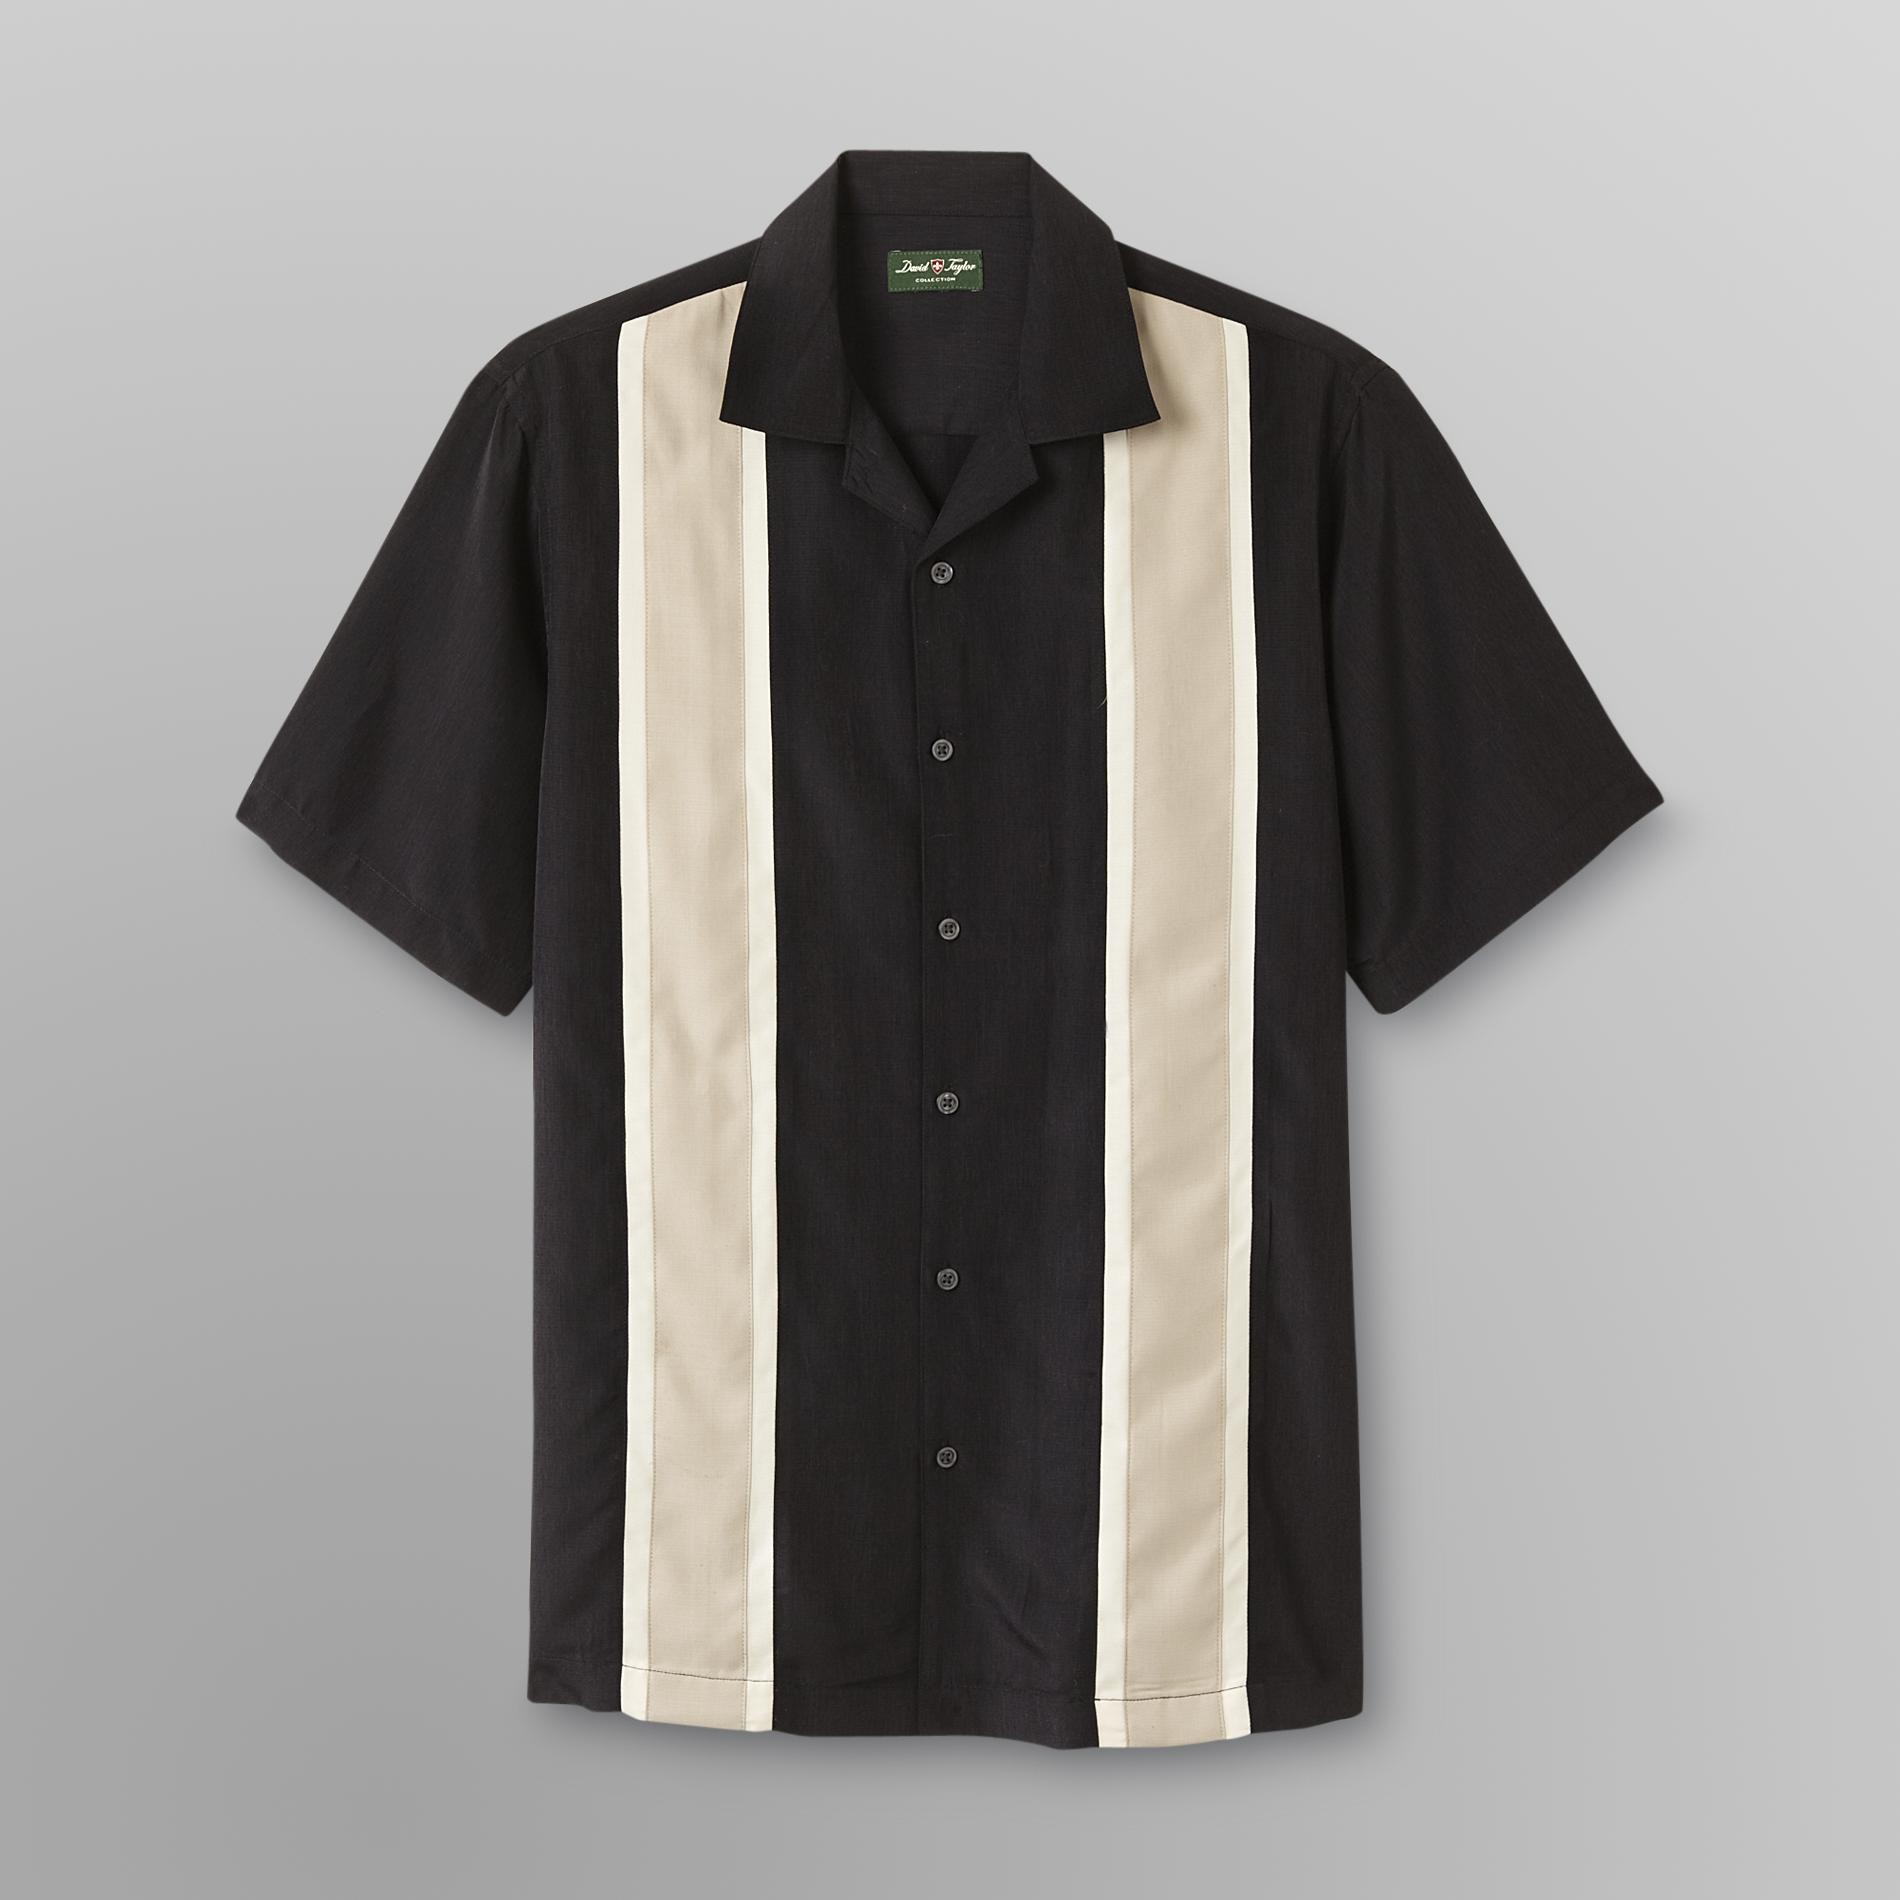 David Taylor Men's Big & Tall Camp Shirt at Kmart.com